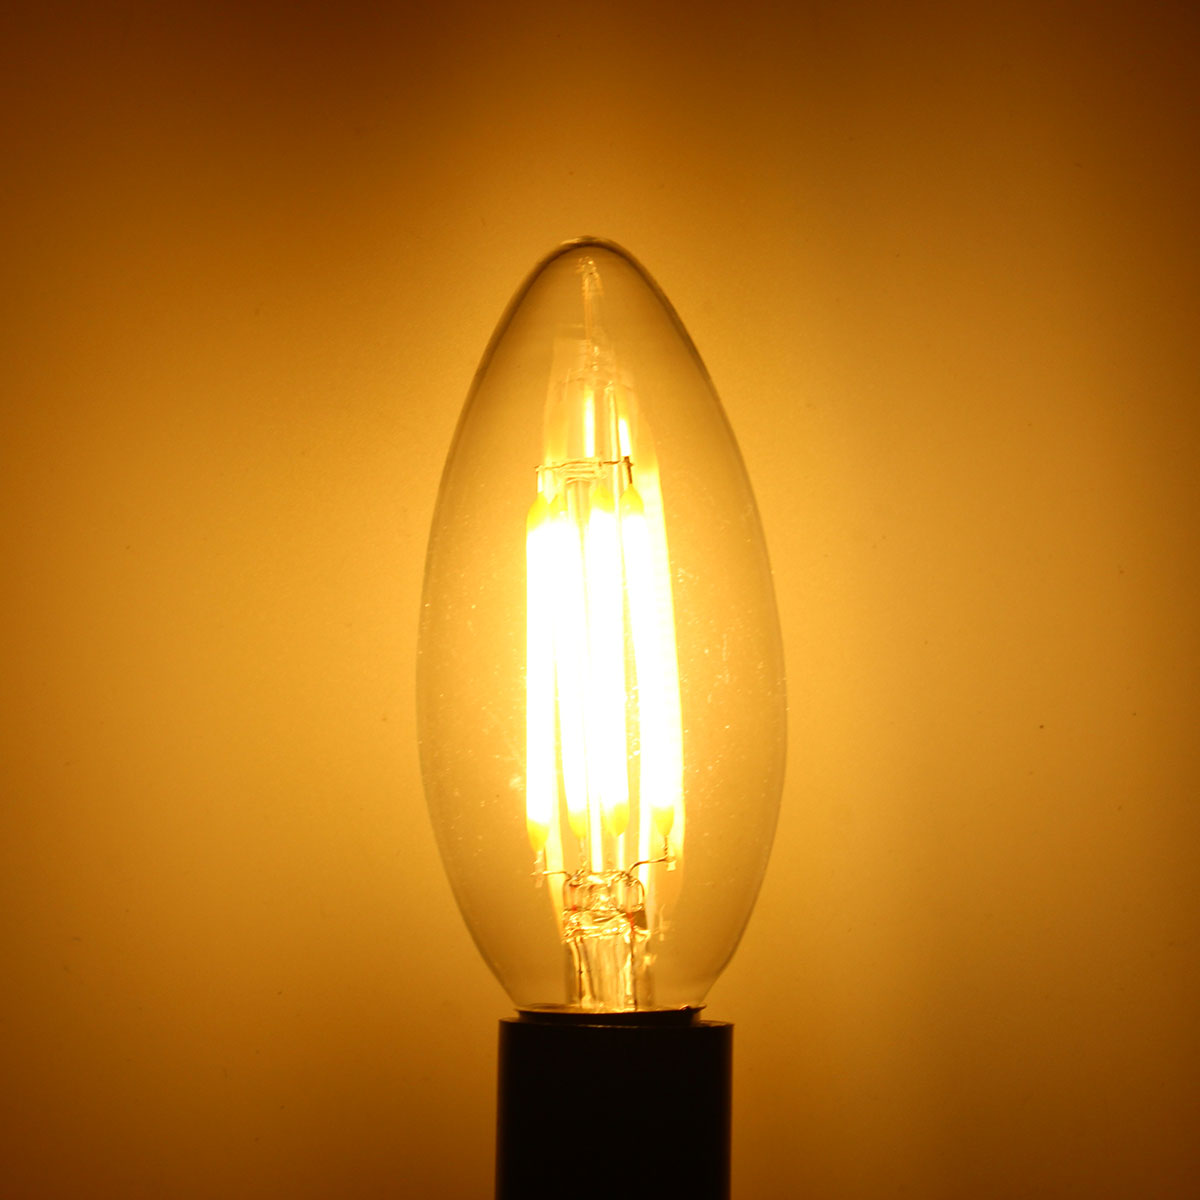 zx dimmable e14 6w led filament light glass house bulb. Black Bedroom Furniture Sets. Home Design Ideas